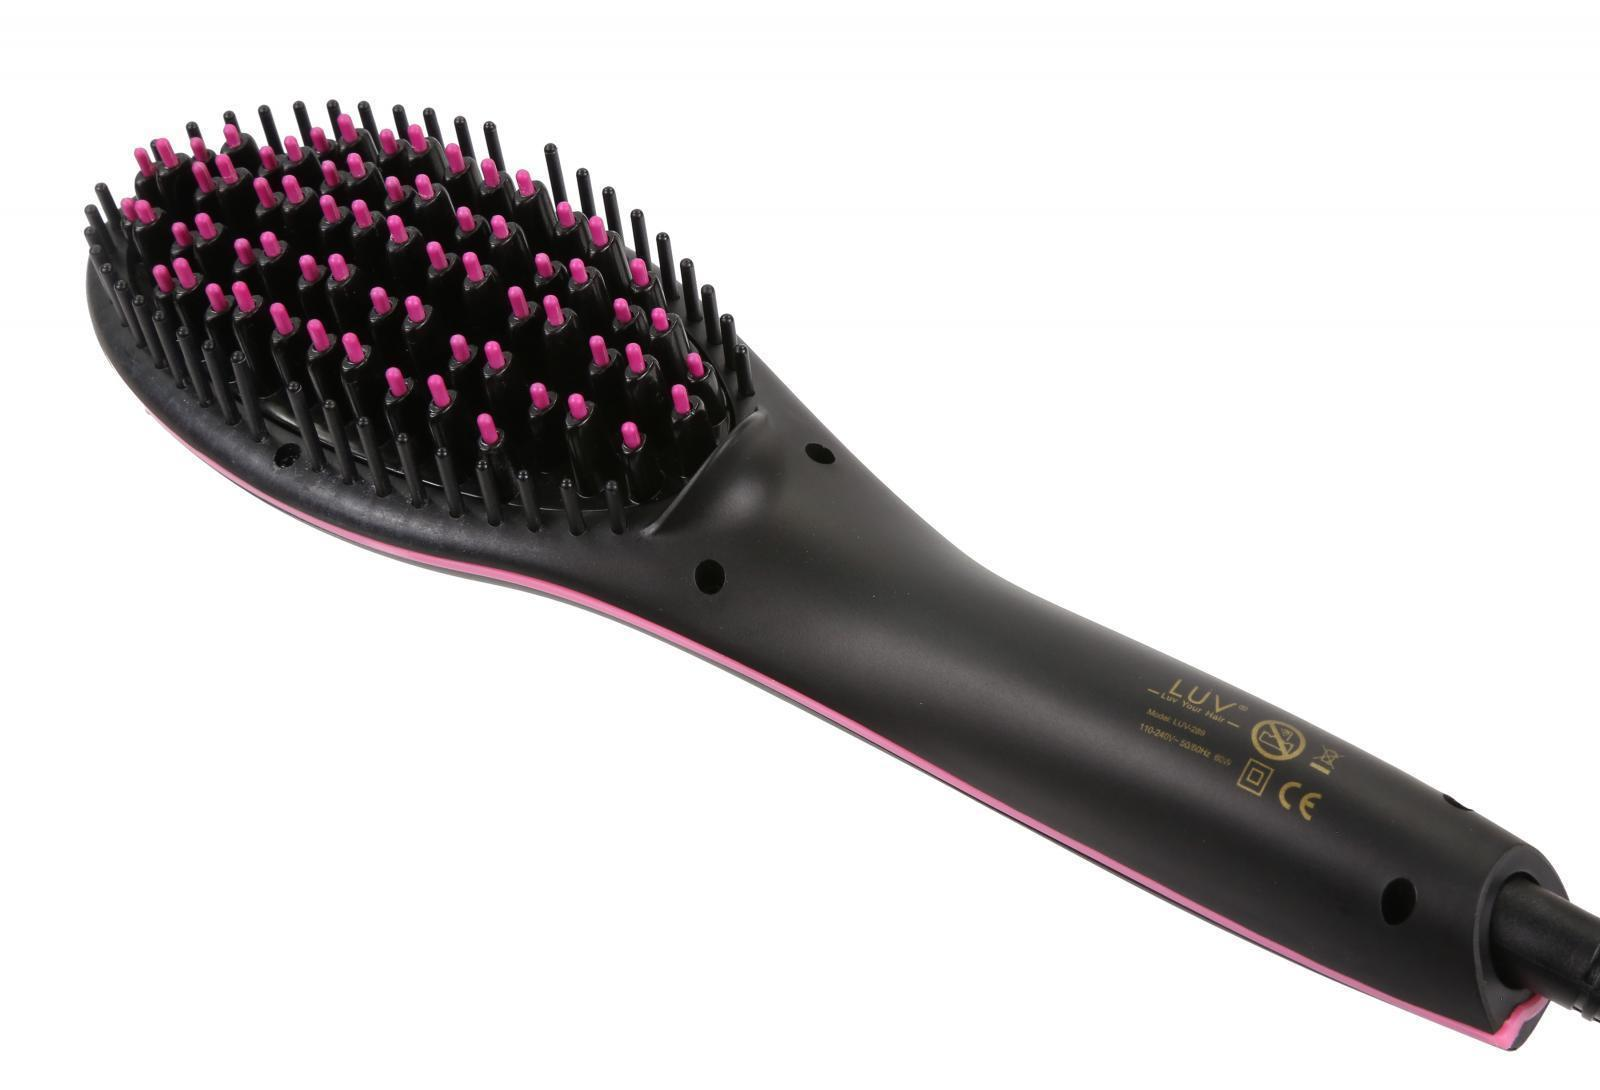 LUV-Hair-Straightening-Brush-Anti-Static-Technology-Anti-Scald-LCD-Display thumbnail 10